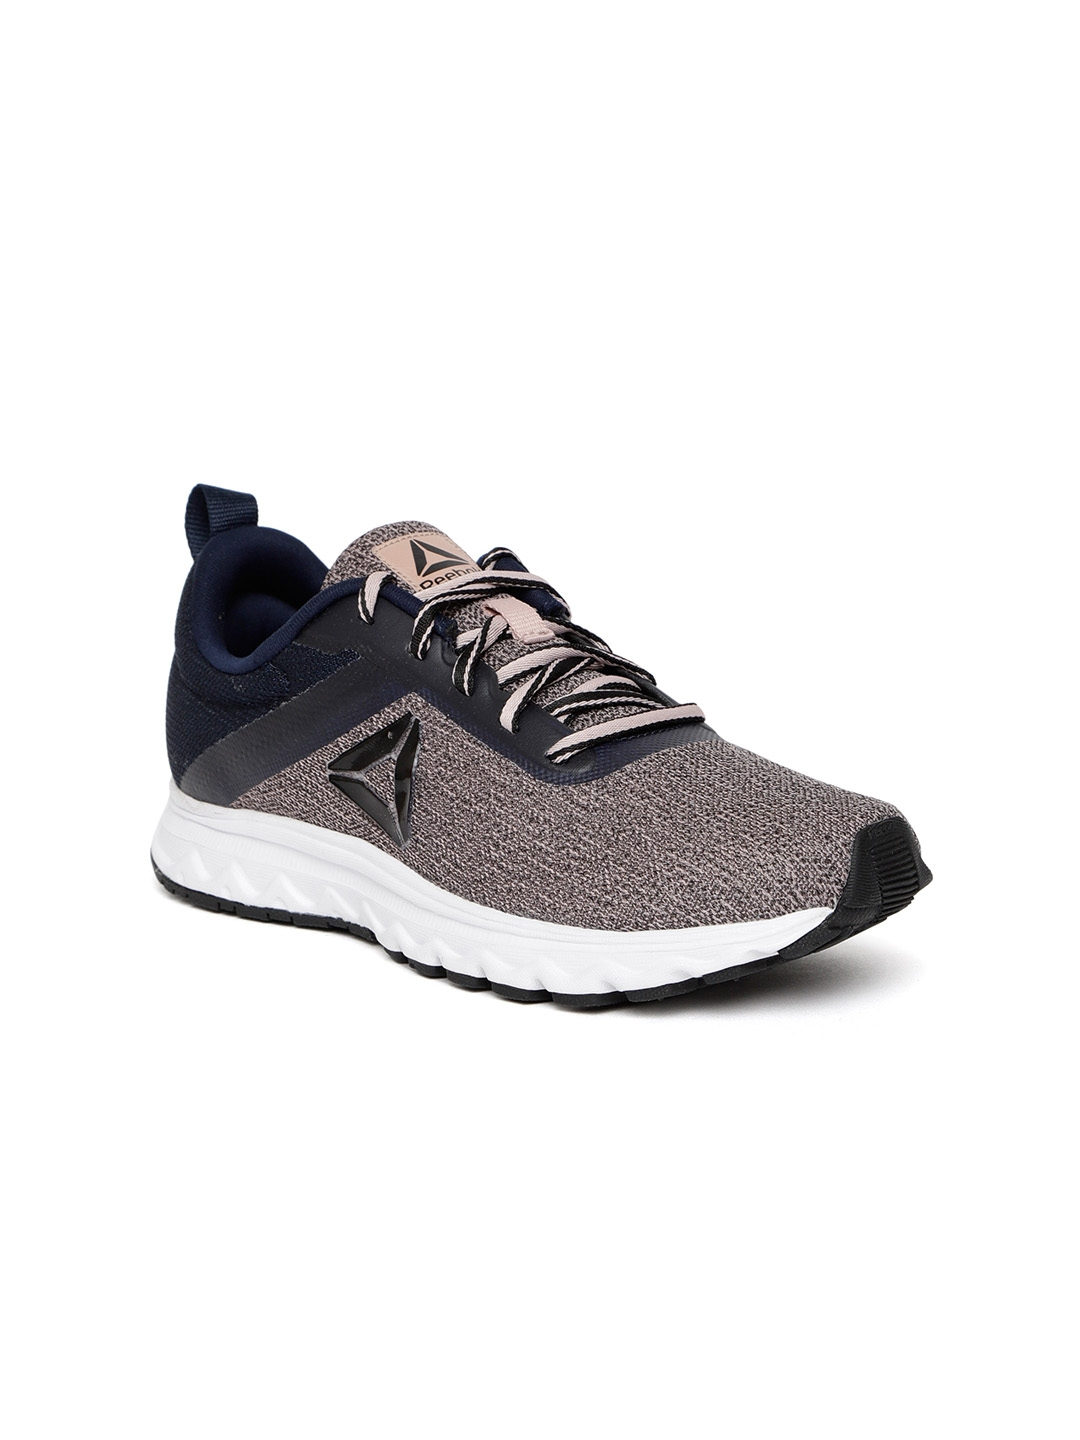 a0695fef5b9 Buy Reebok Women Pink   Navy Blue Flyer Run LP Shoes - Sports Shoes ...